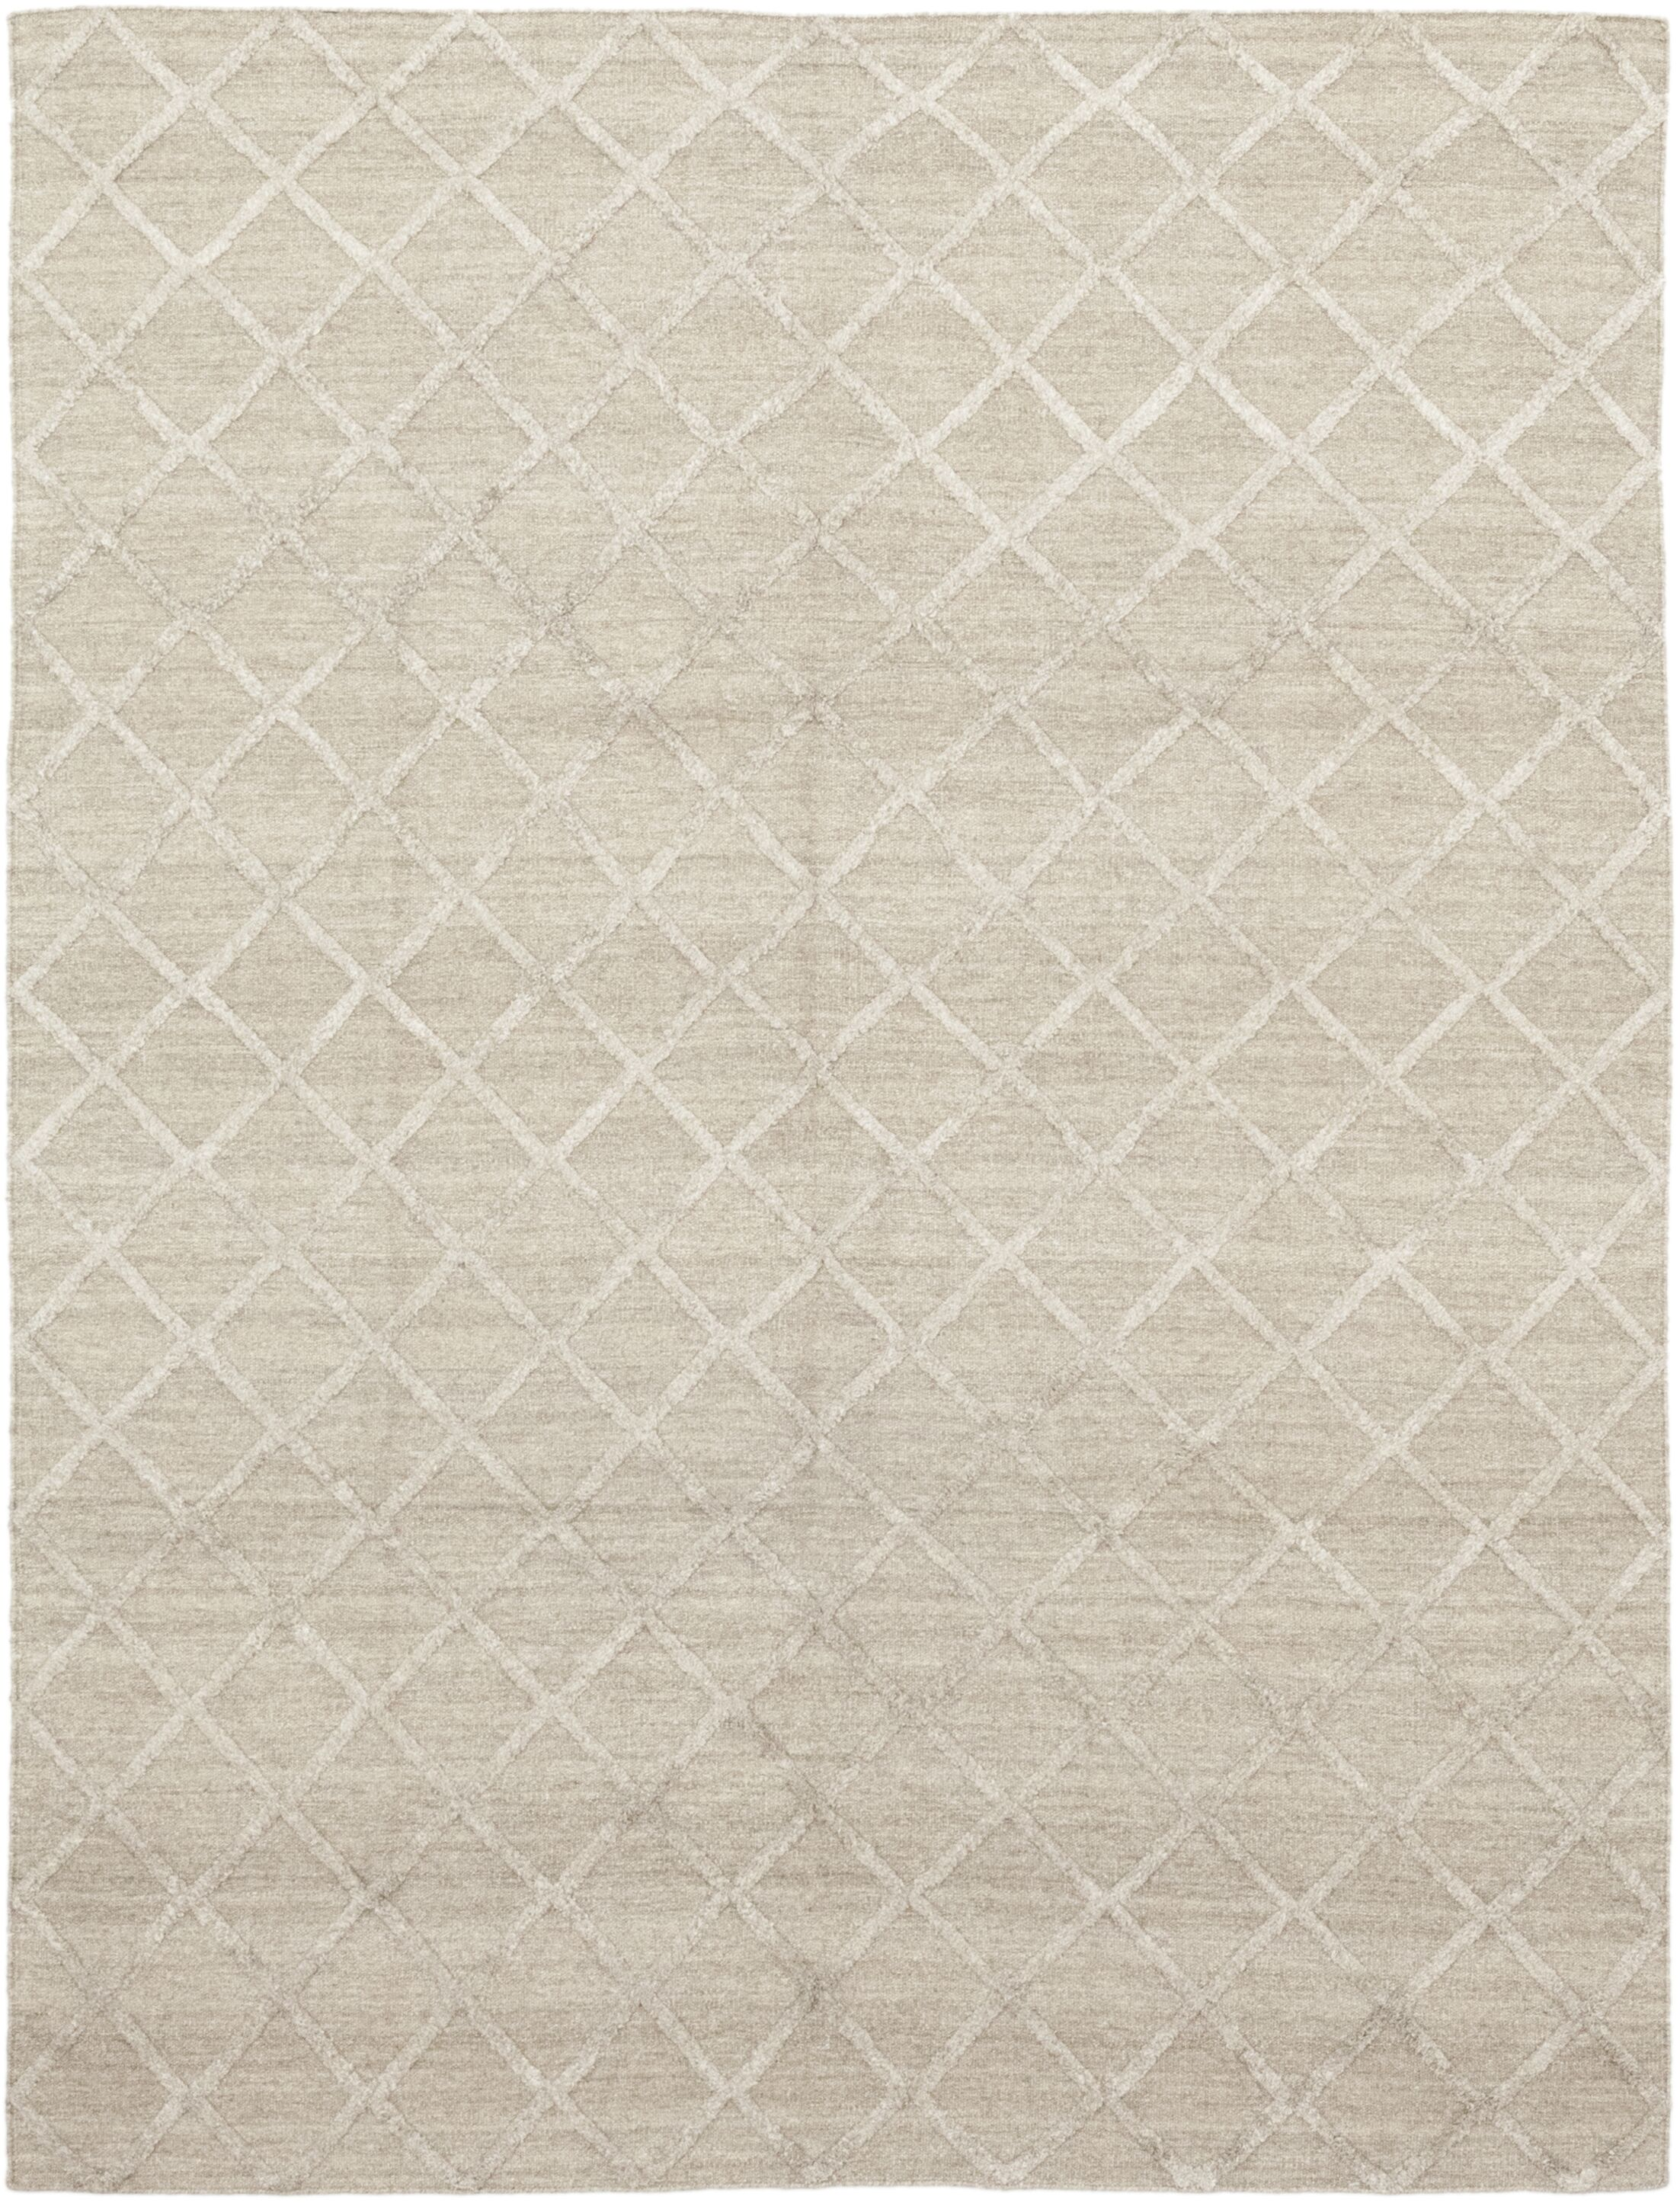 One-of-a-Kind Montsegur Hand-Knotted Wool Beige Indoor Area Rug